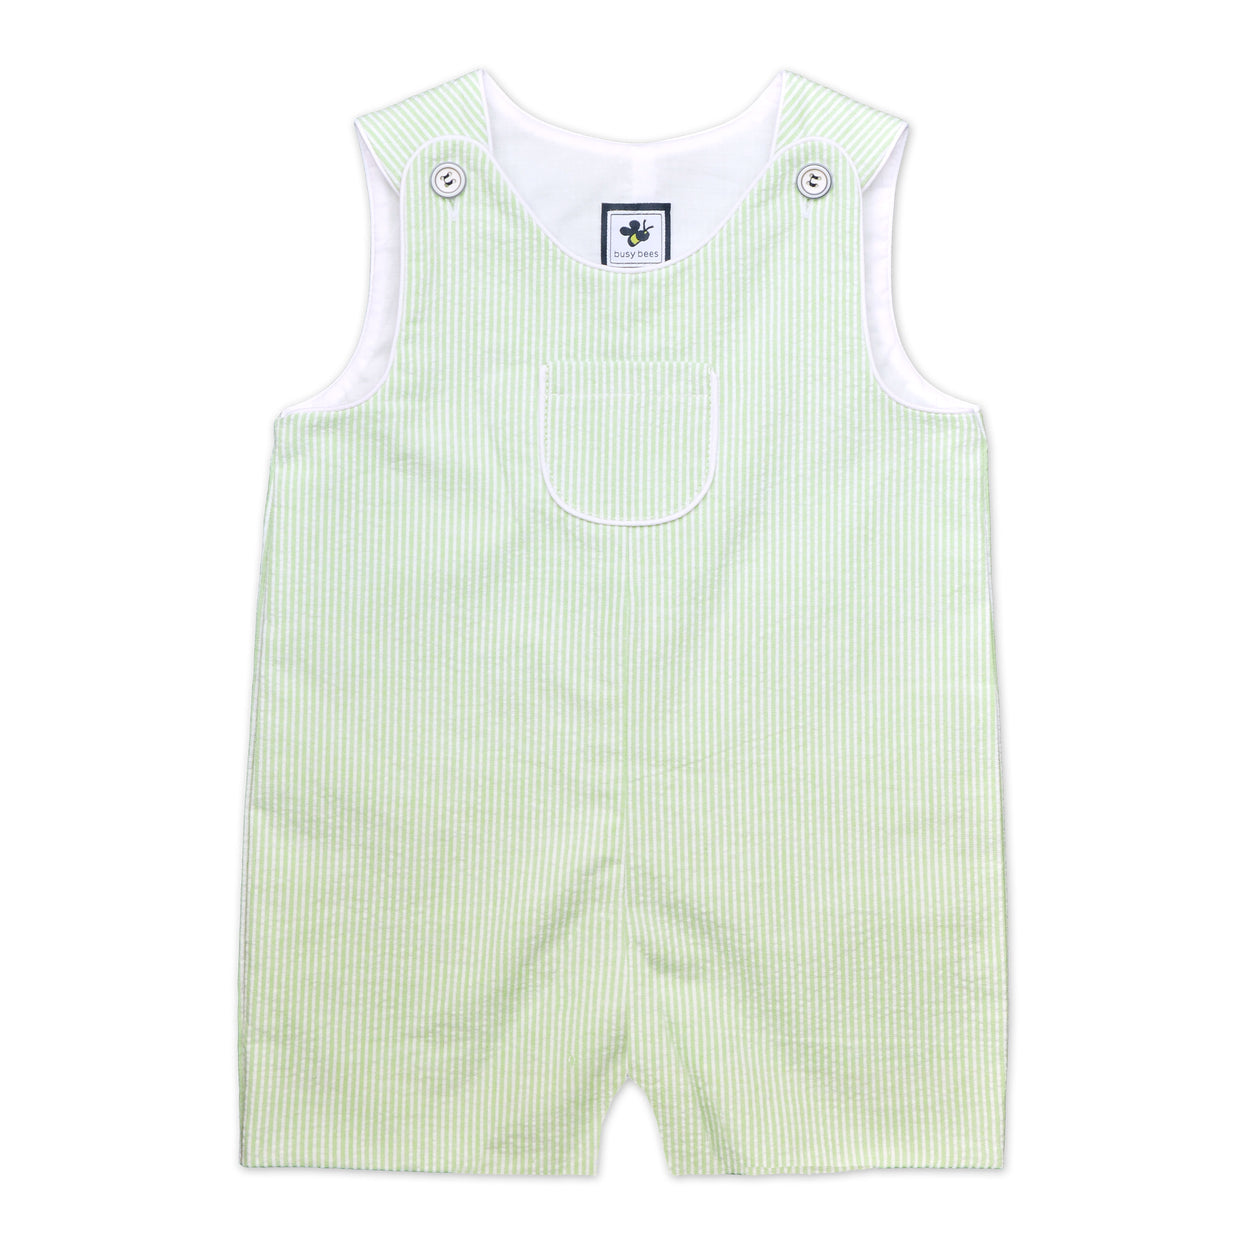 jack classic shortall green seersucker stripe